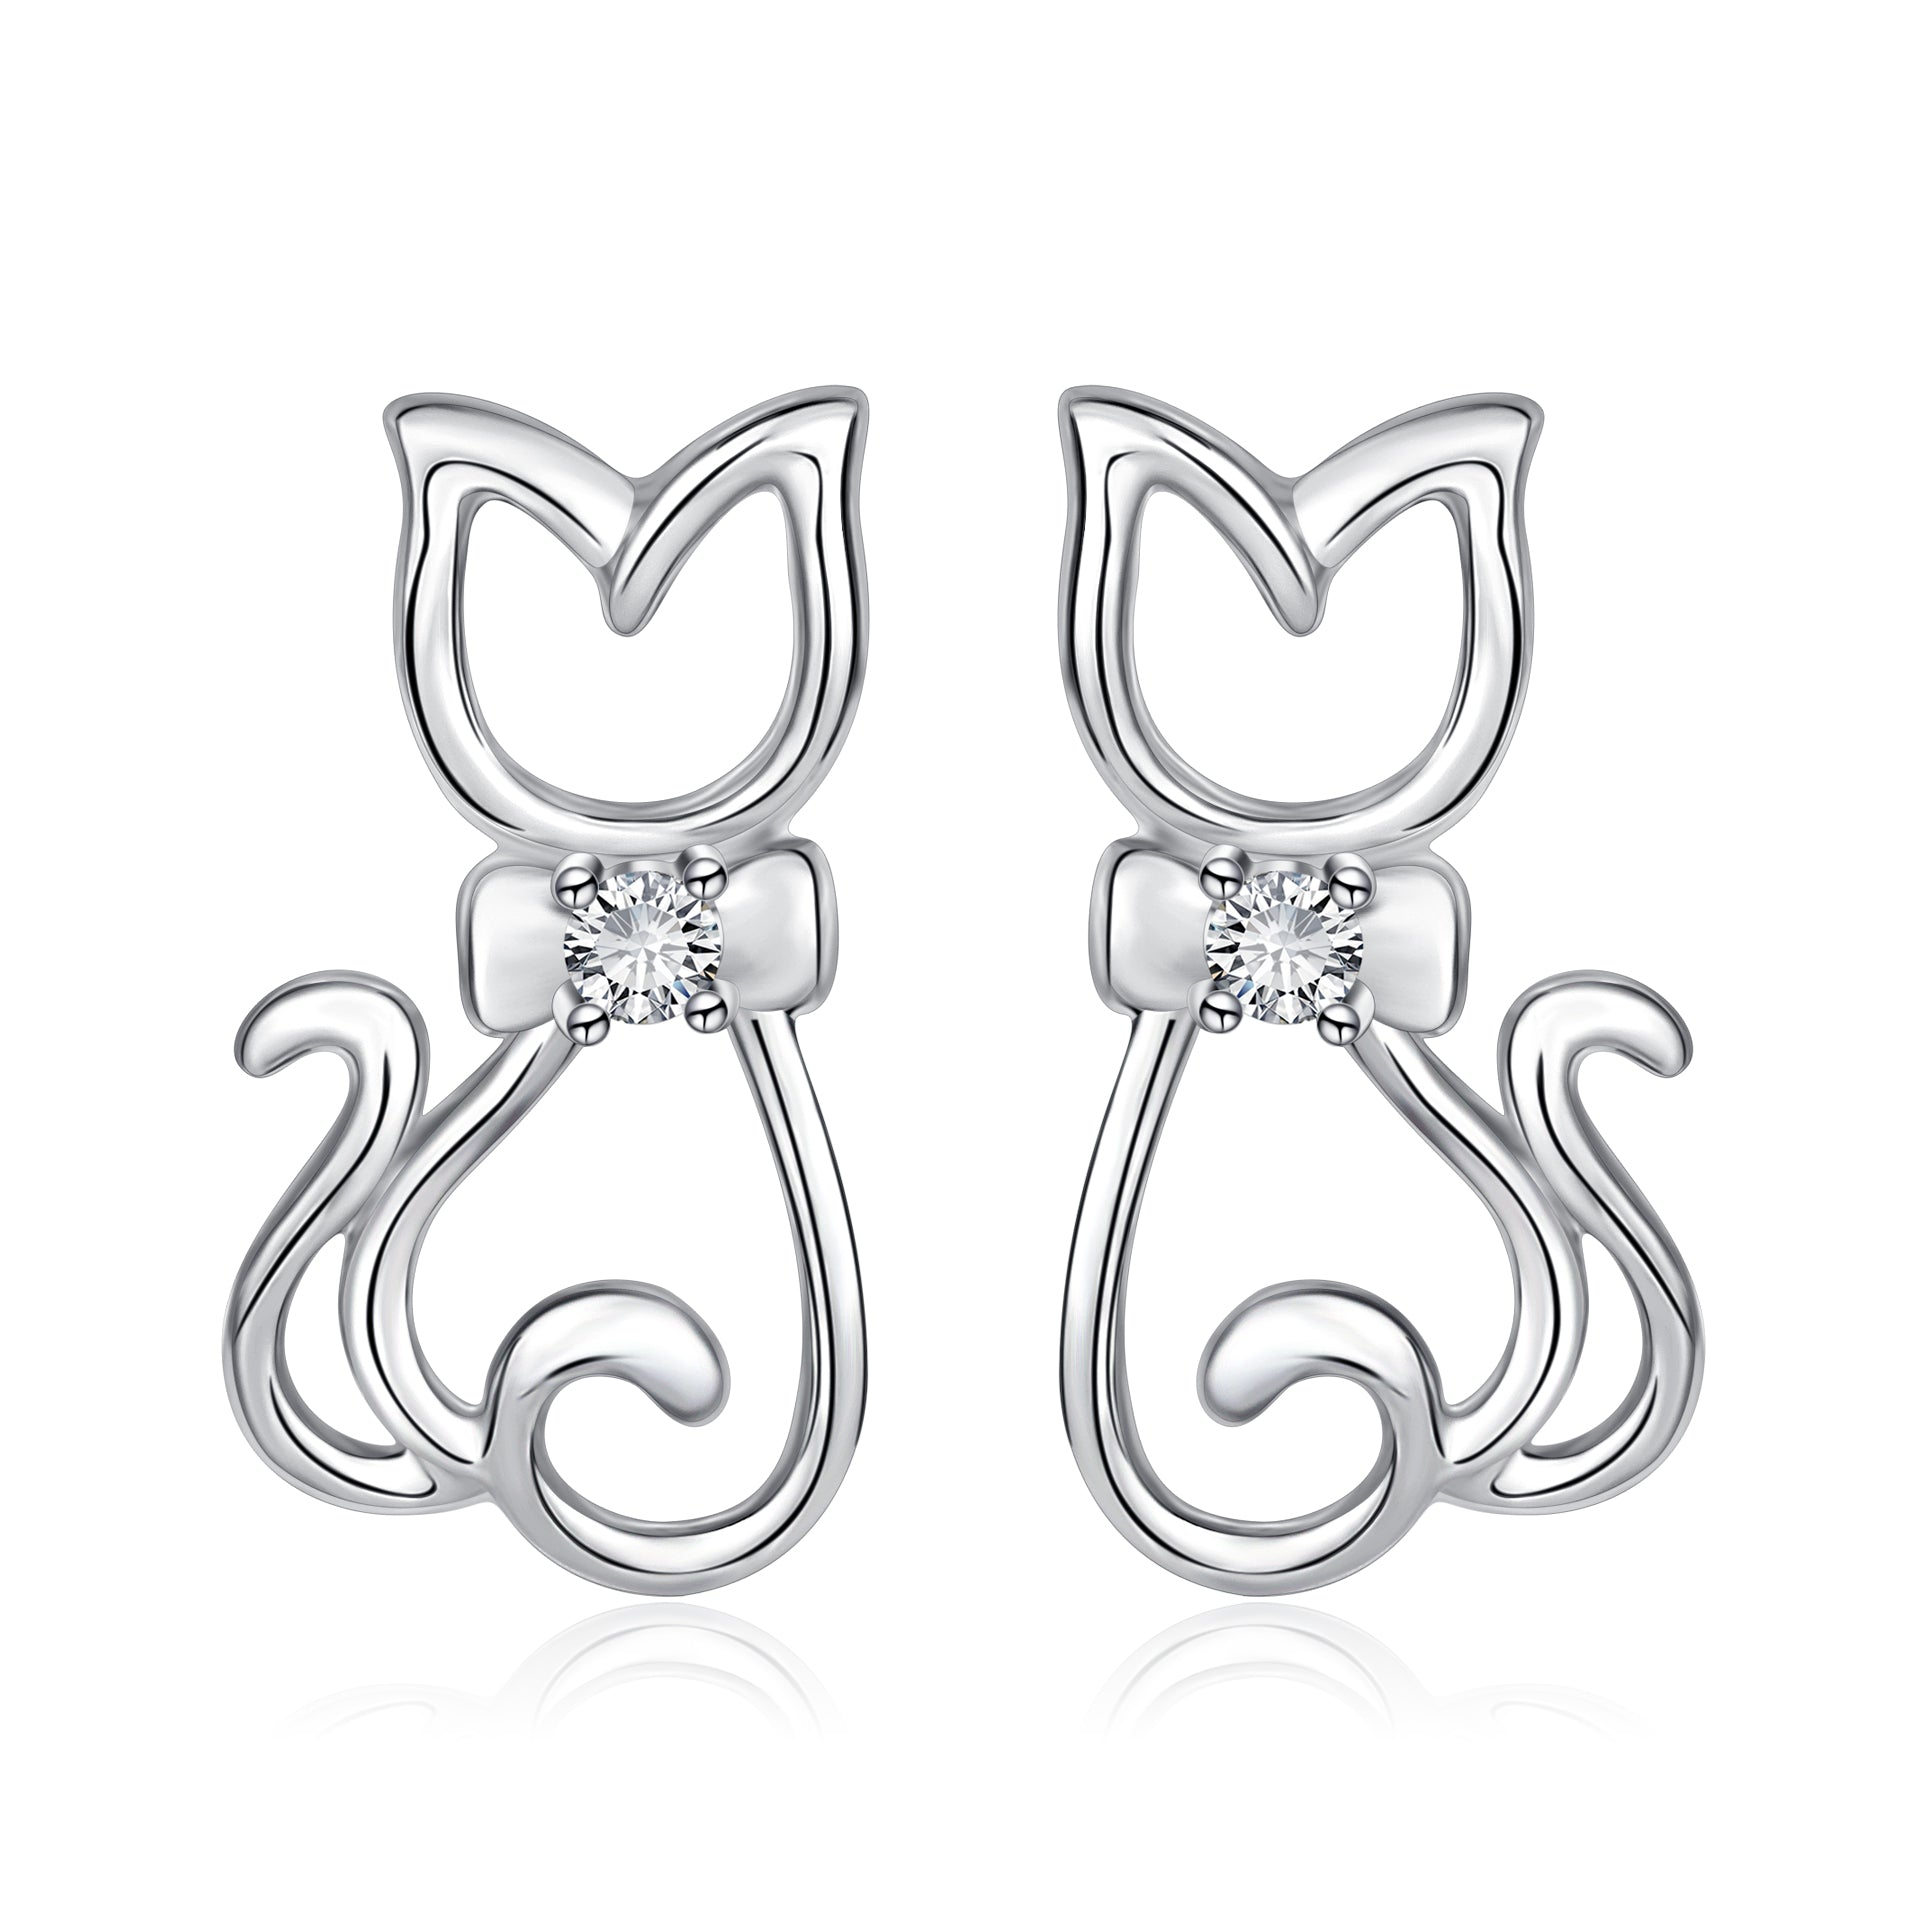 Cat design earrings sterling silver earrings 925 with CZ from factory